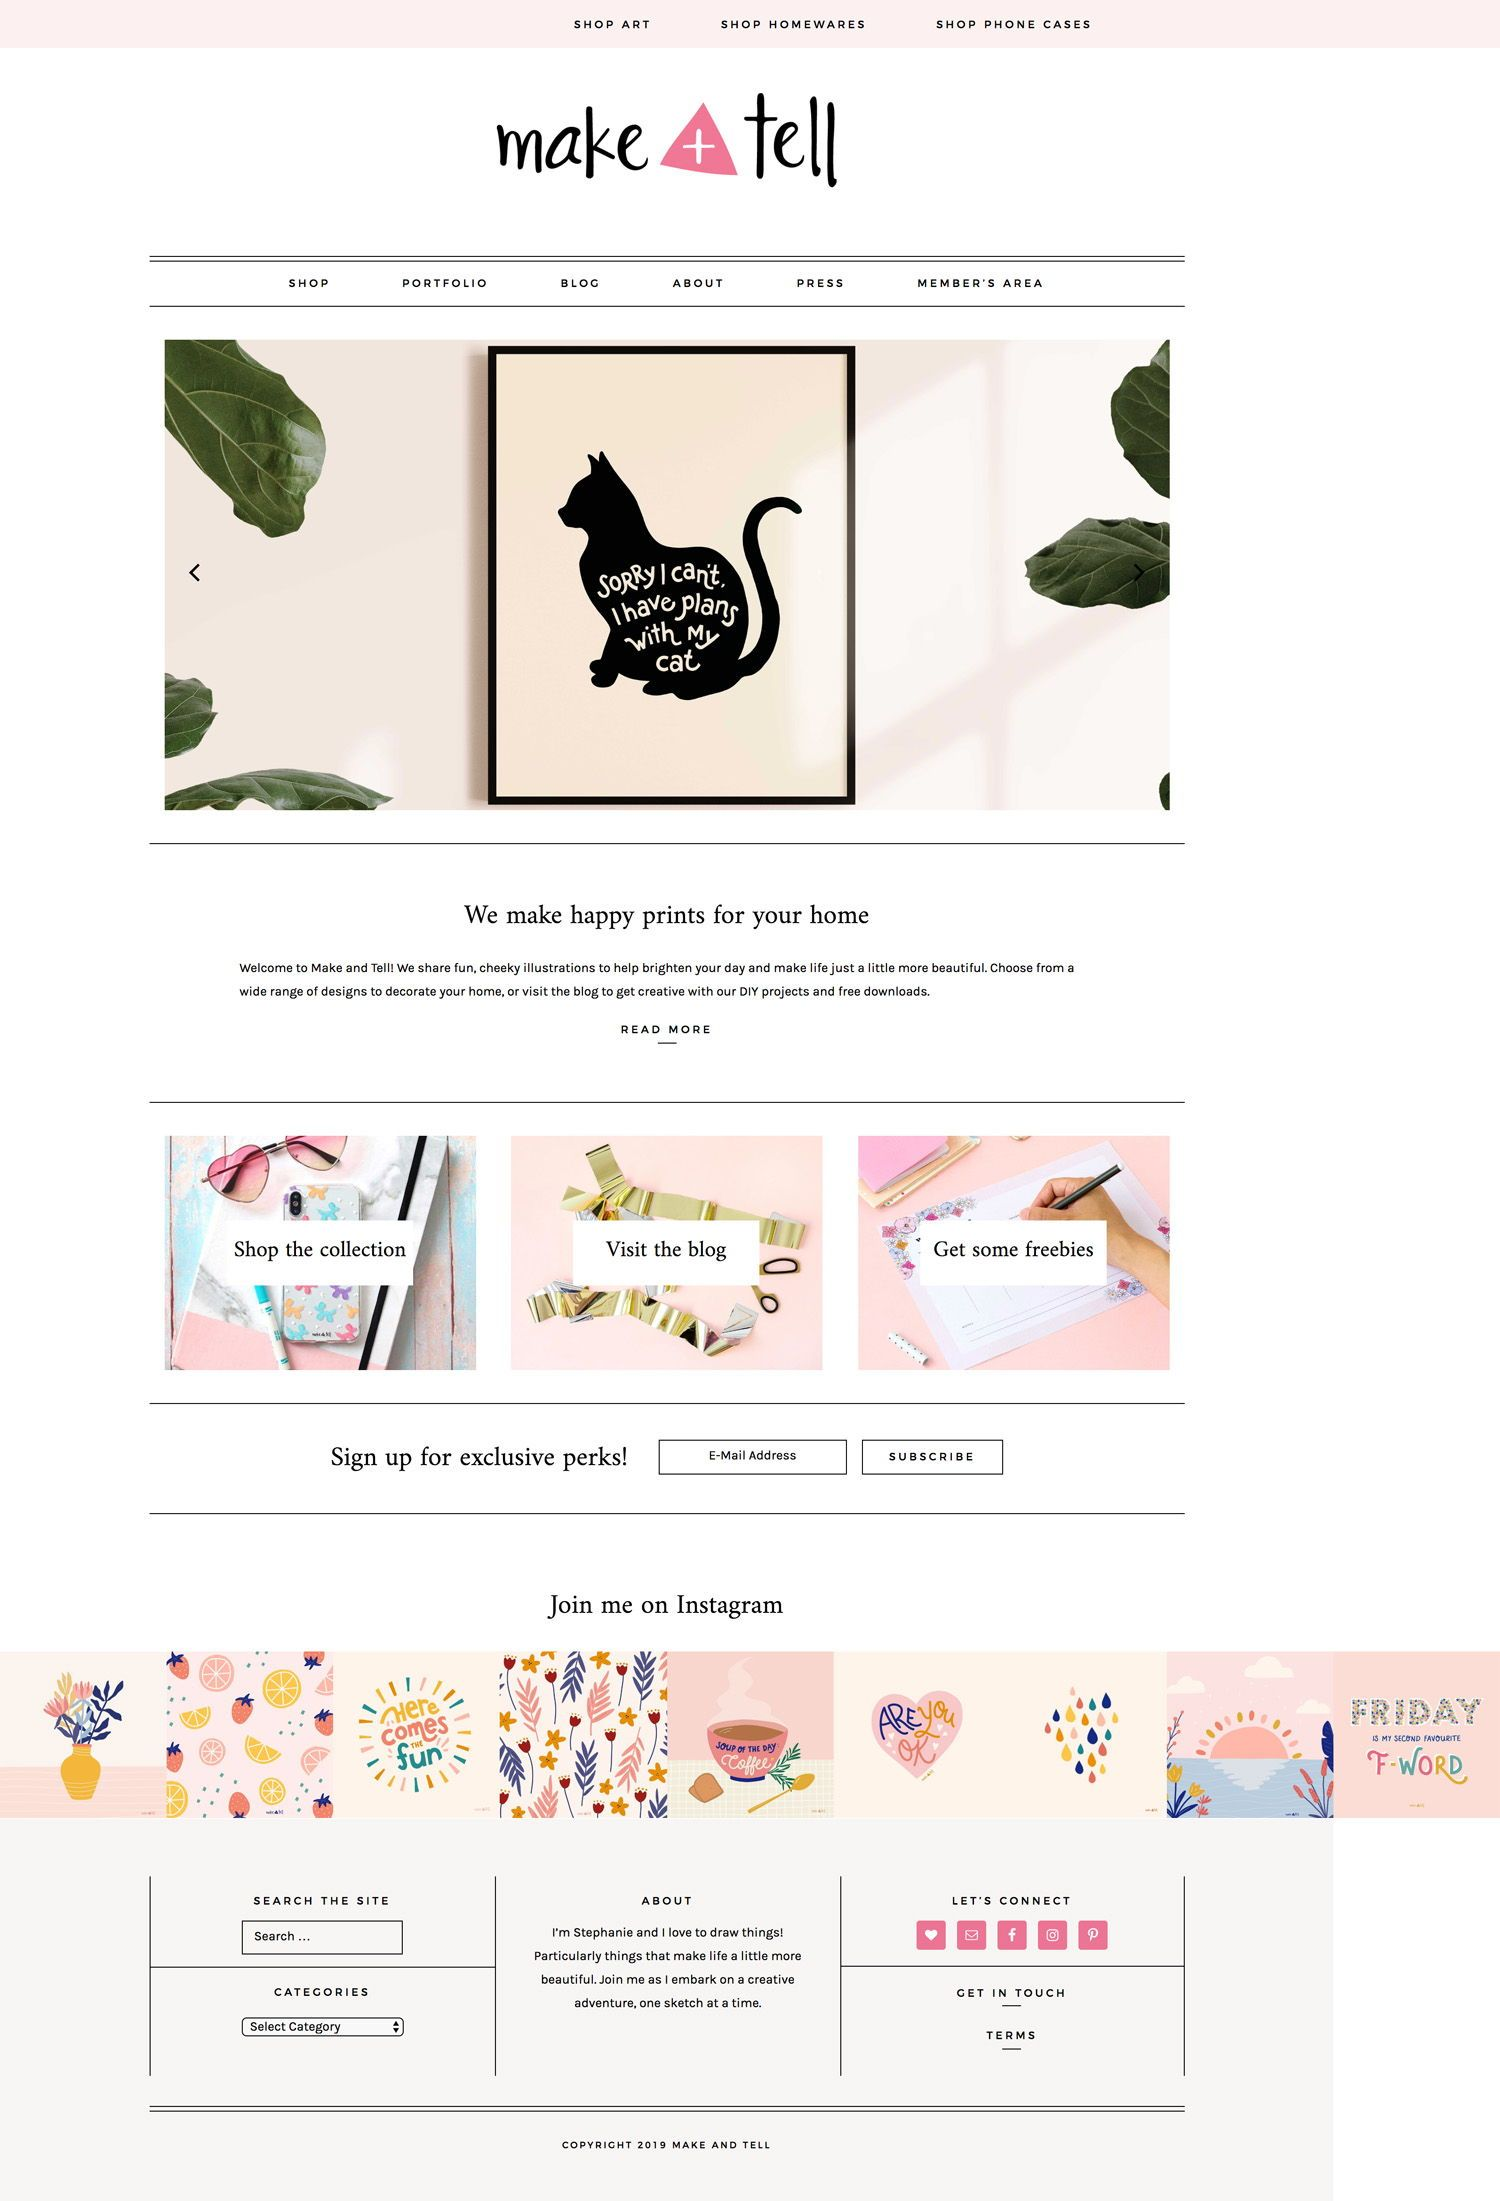 Make and Tell is a blog all about the love of crafts and